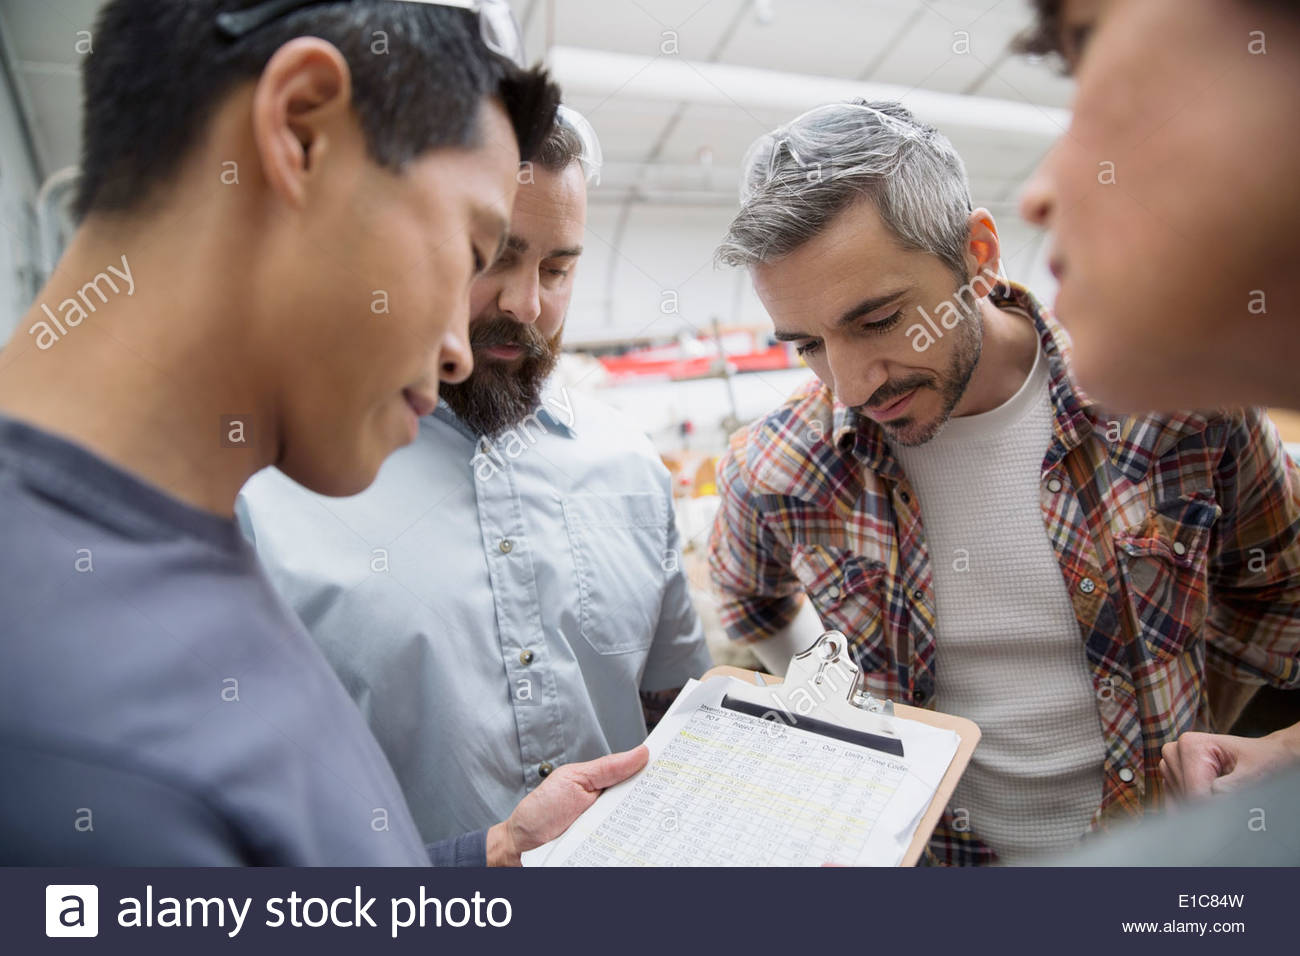 Workers with clipboard meeting in textile manufacturing plant - Stock Image